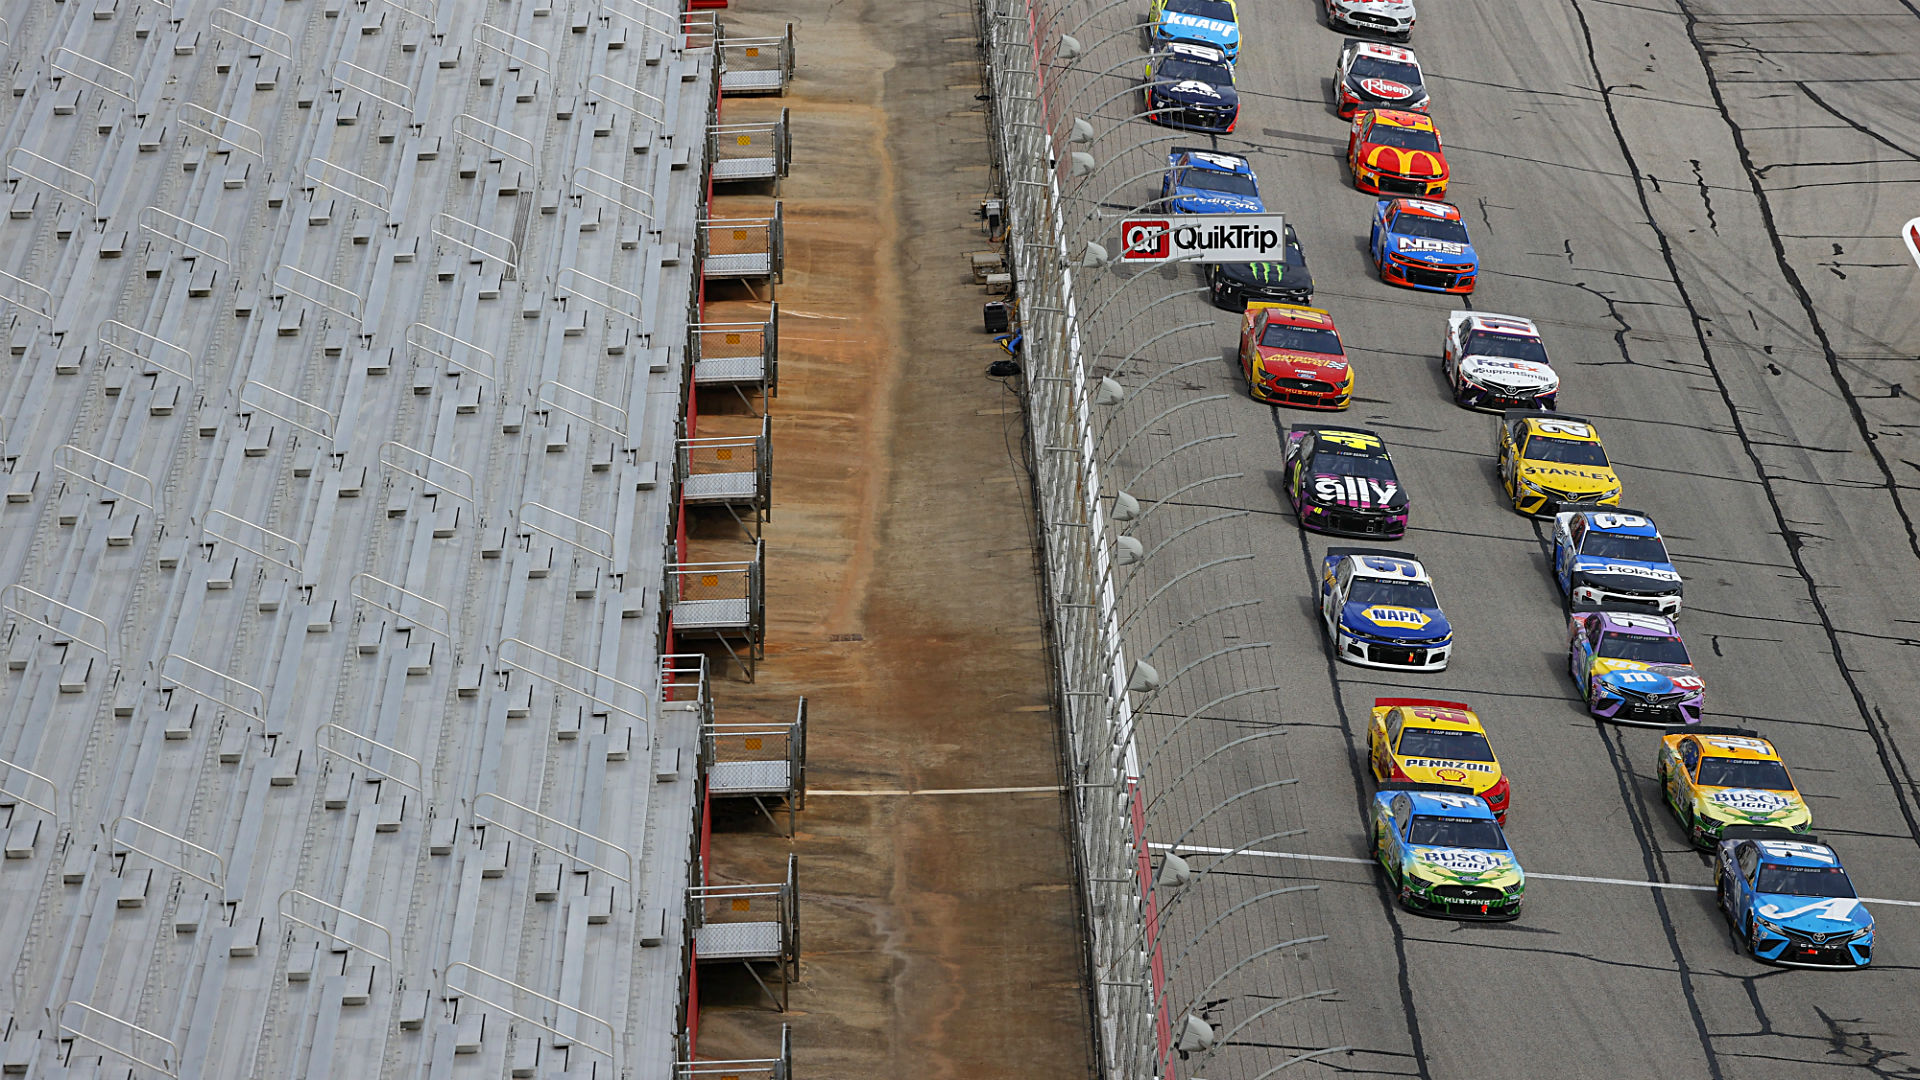 Who won the NASCAR race yesterday? Full results for Sunday's Folds of Honor QuikTrip 400 at Atlanta 1